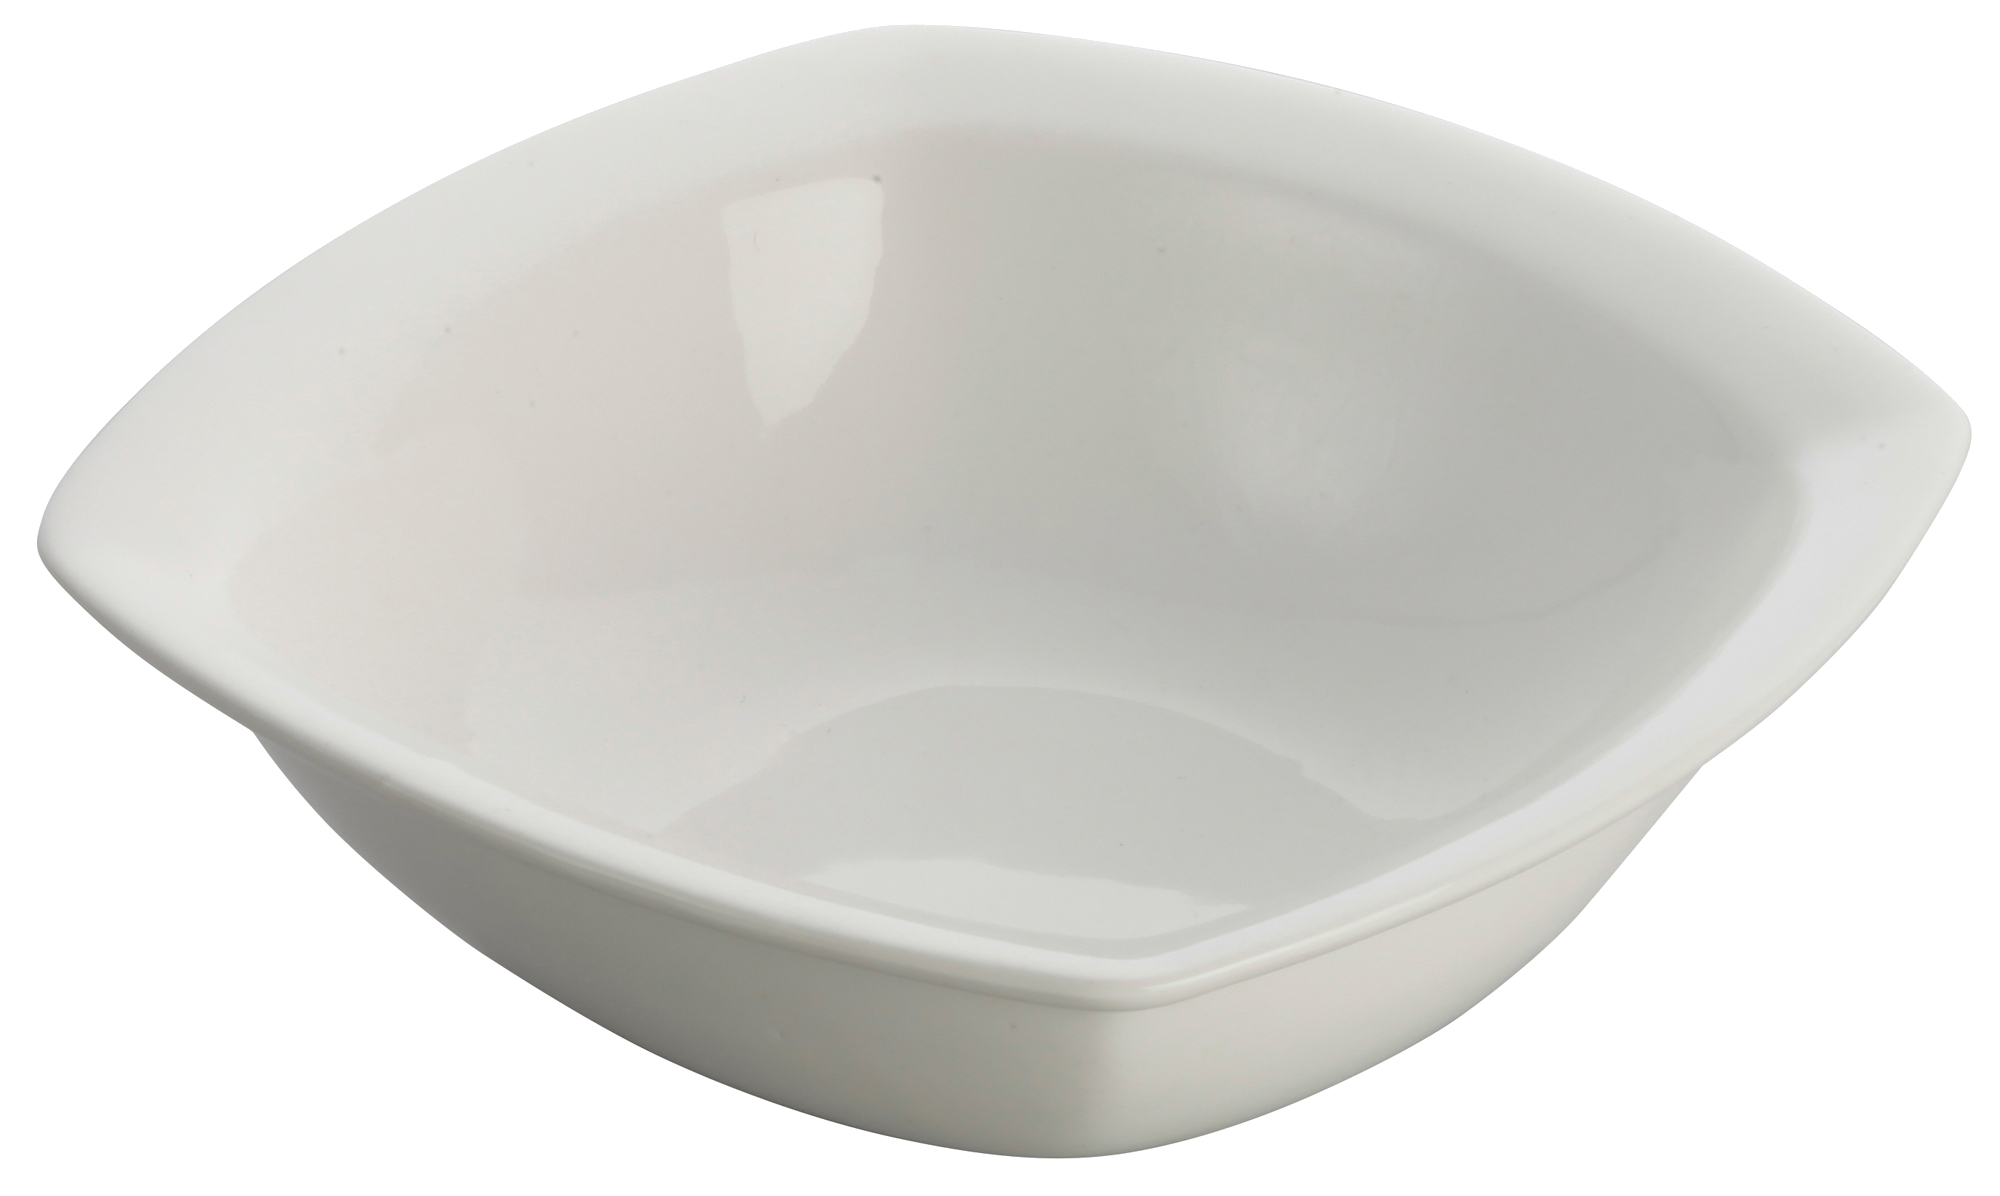 Winco WDP020-101 china, bowl (unknown capacity)